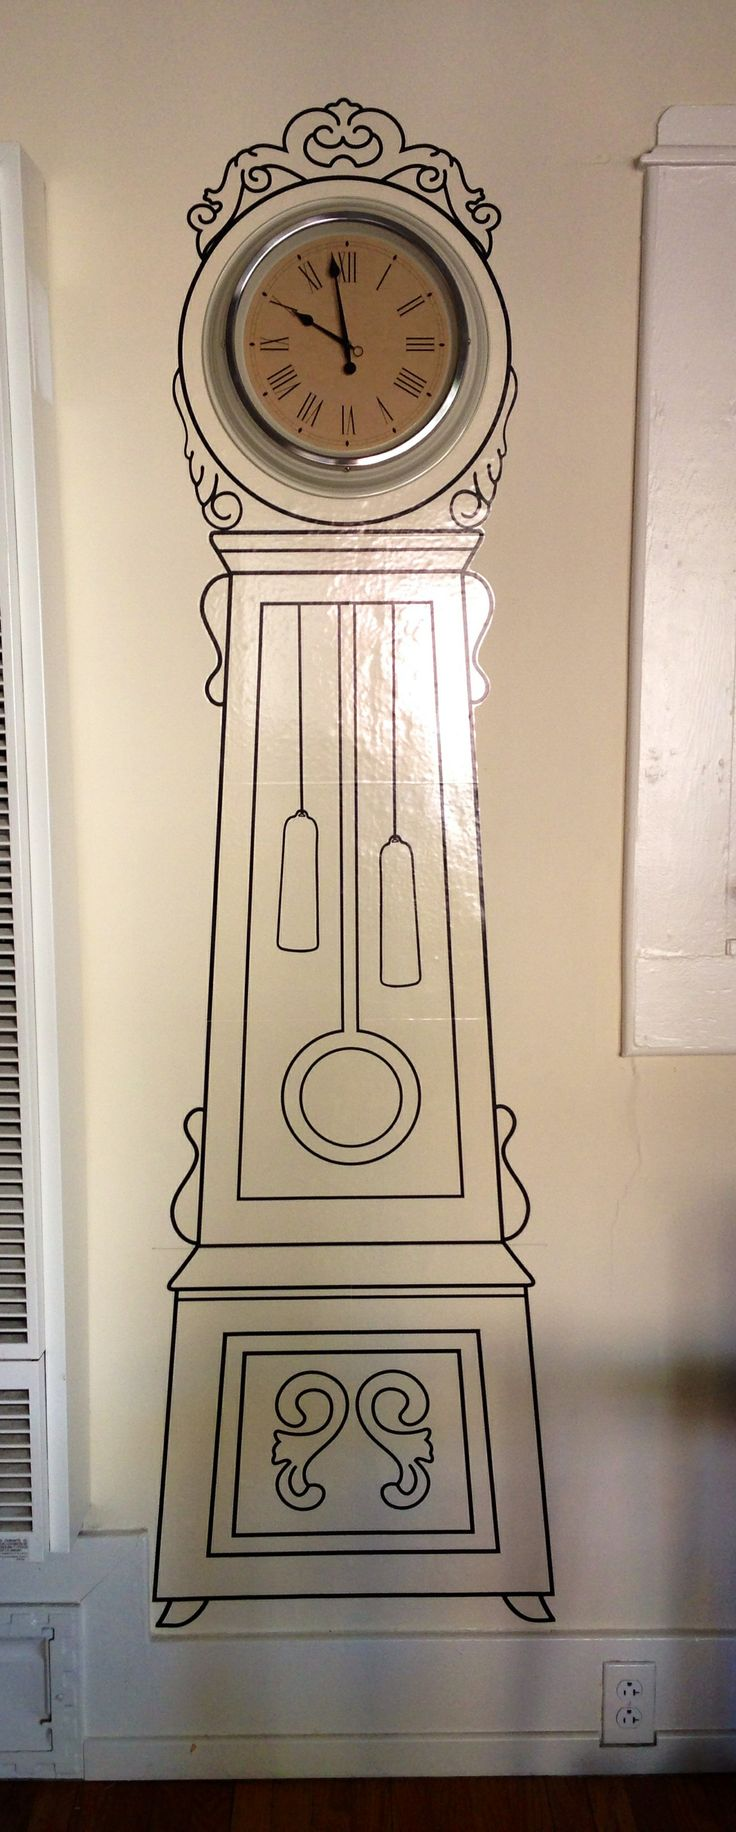 Grandfather clock wall sticker from ikea my diy my projects pinterest clock grandfather - Wall hanging grandfather clock ...